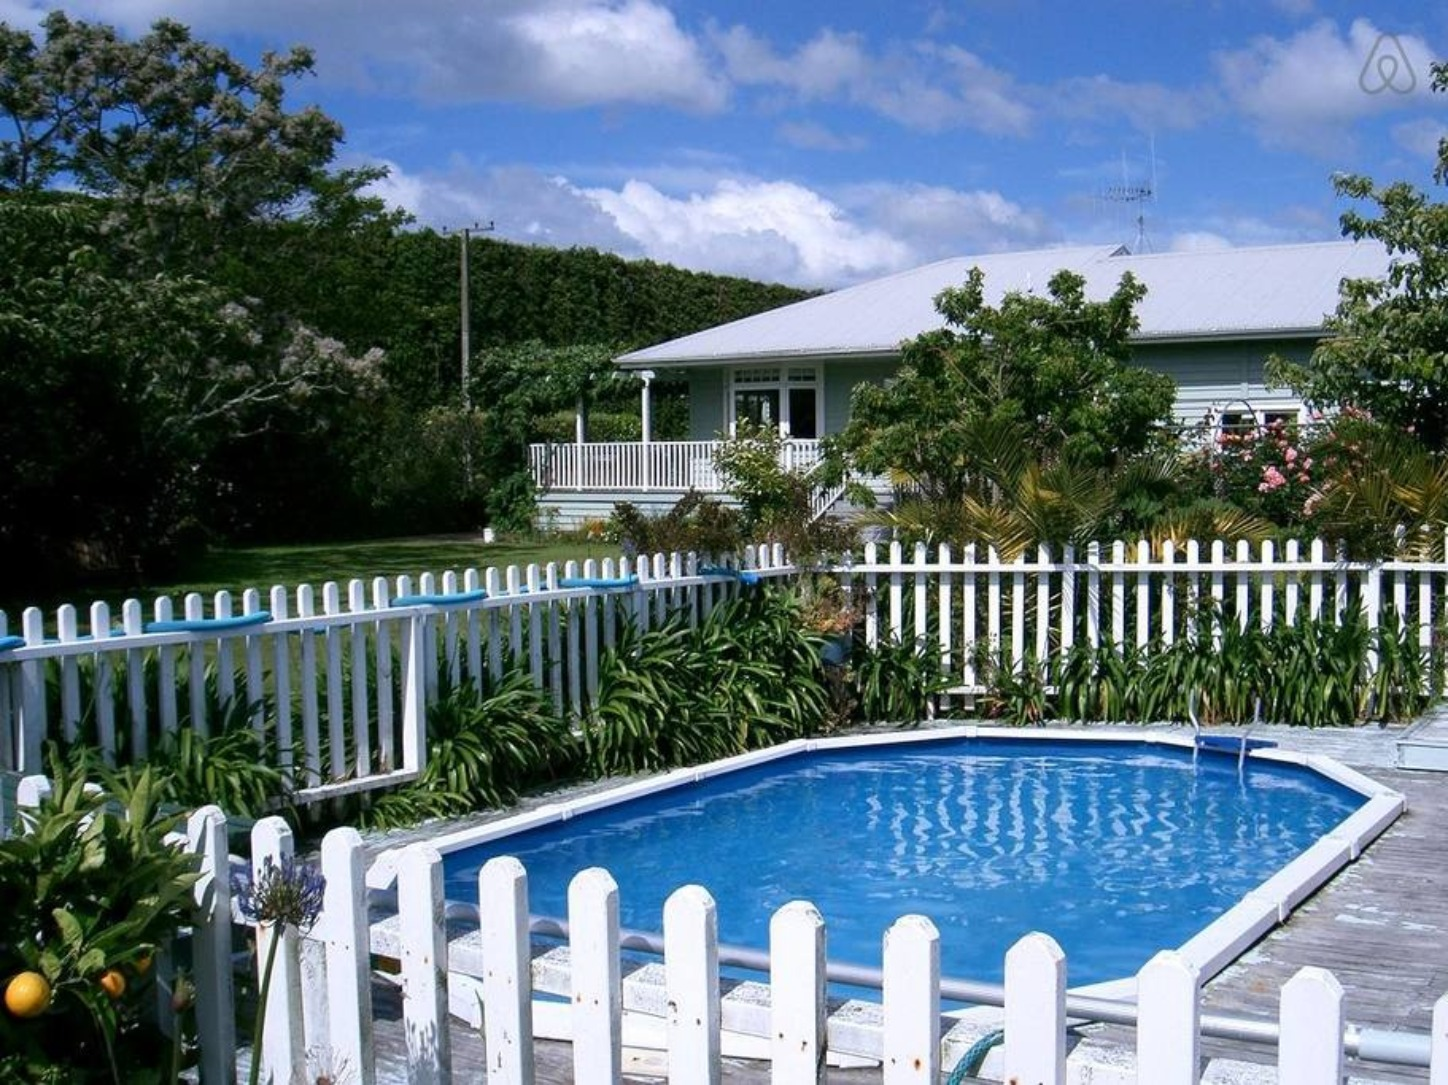 A group of lawn chairs sitting next to a pool at Aotea Villa.